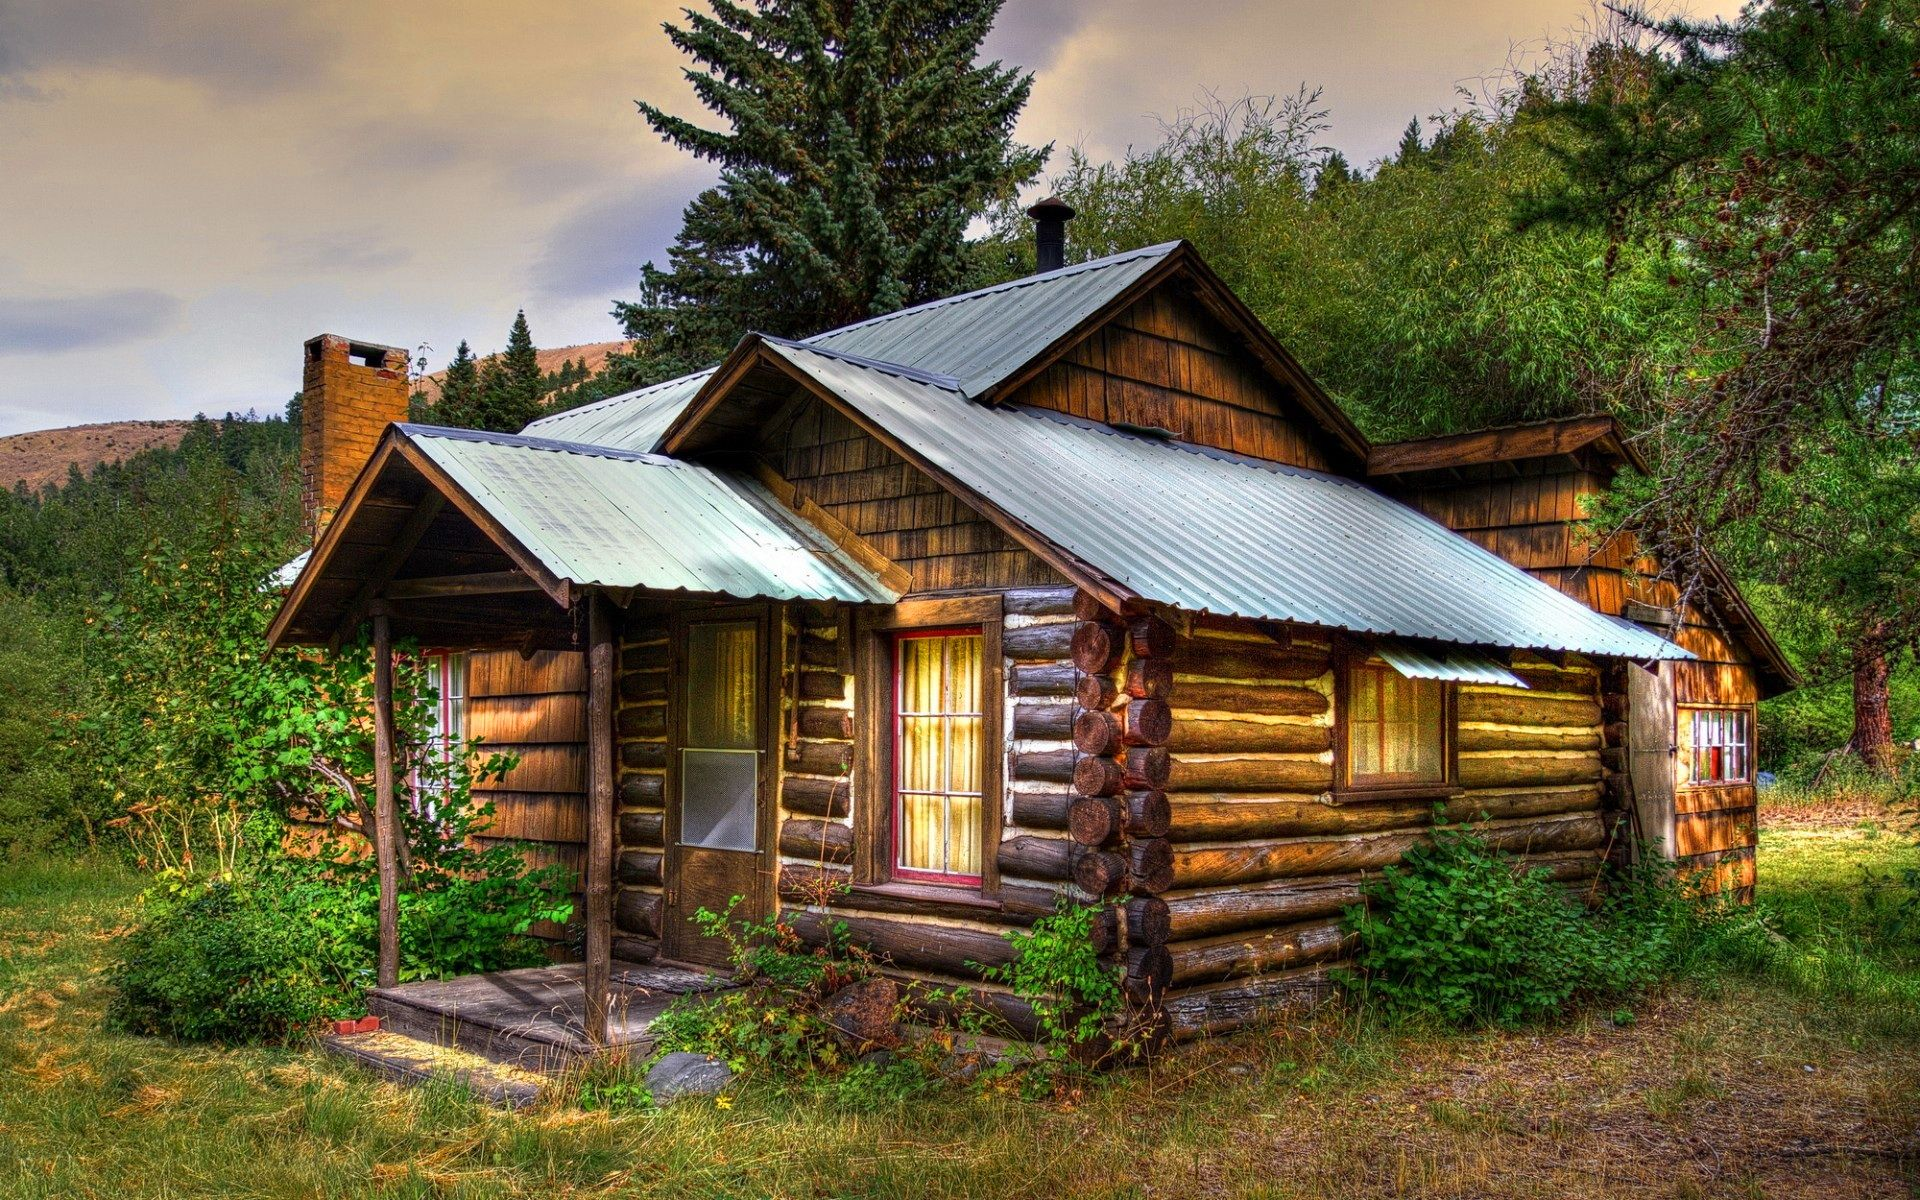 Wood cabin cabins cottages pinterest cabin wood for Wood cabin homes